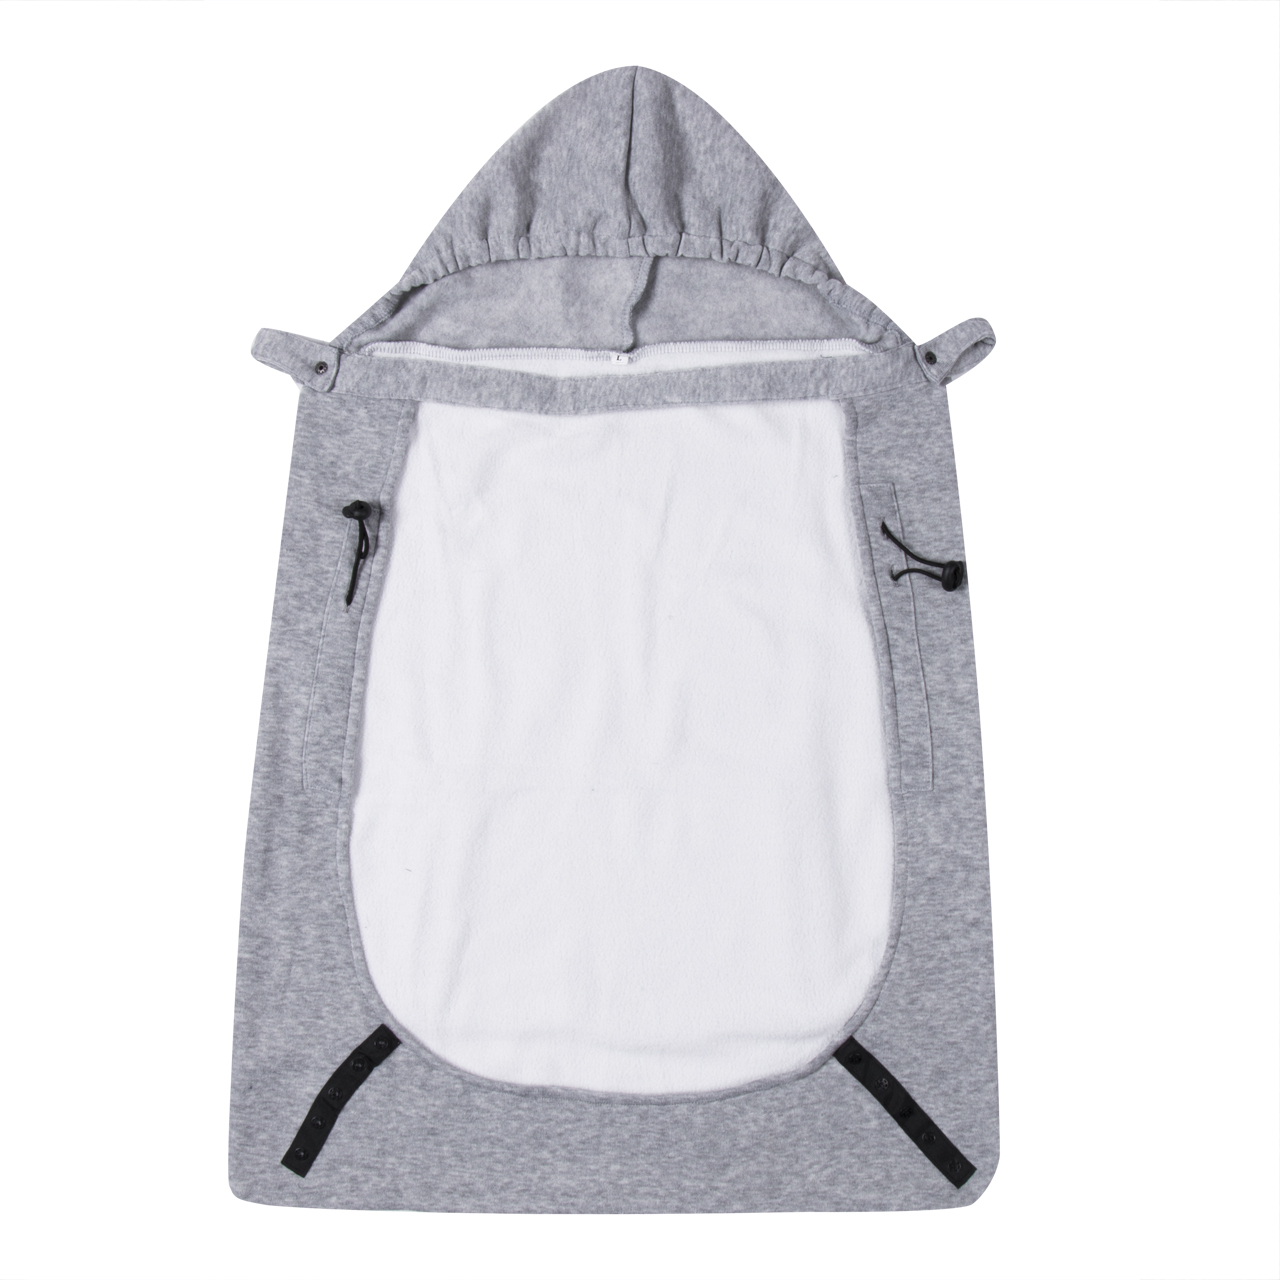 Baby Carrier New Warm Wrap Sling Windproof Baby Backpack Blanket Carrier Cloak Grey Funtional Winter Cover Hot